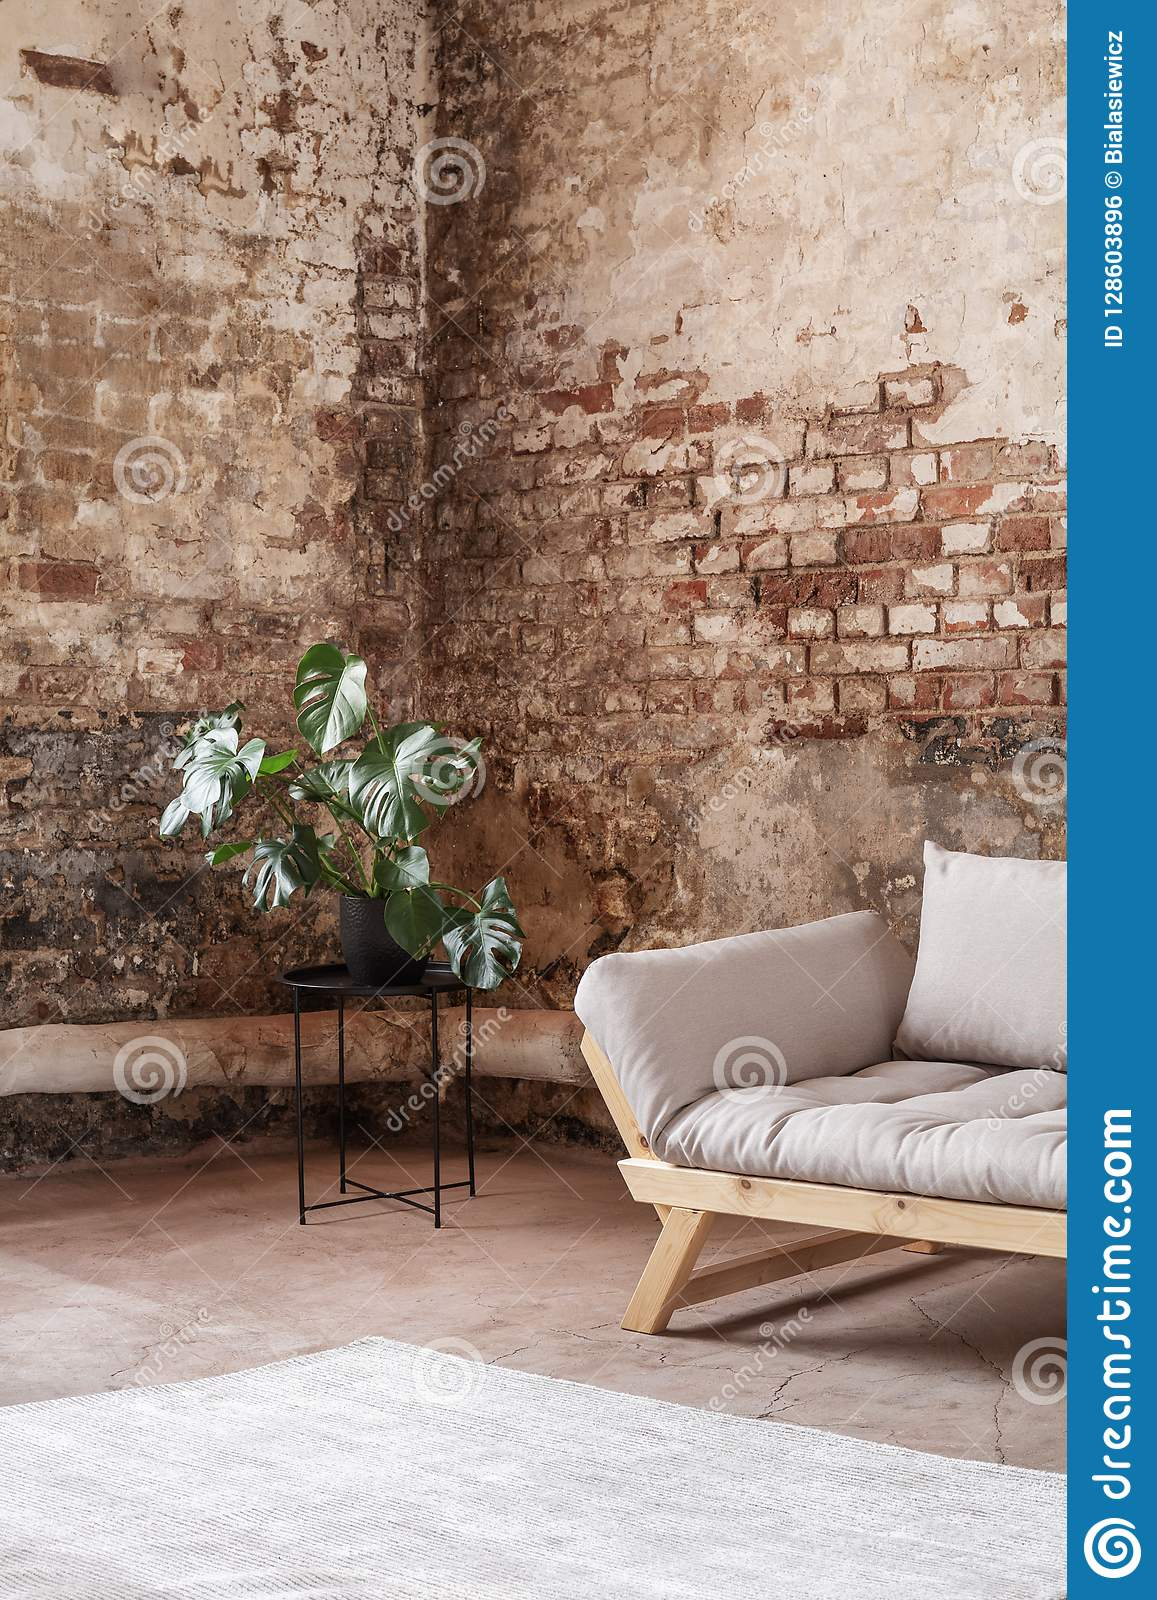 Plant next to grey sofa in industral room interior with carpet and red brick wall